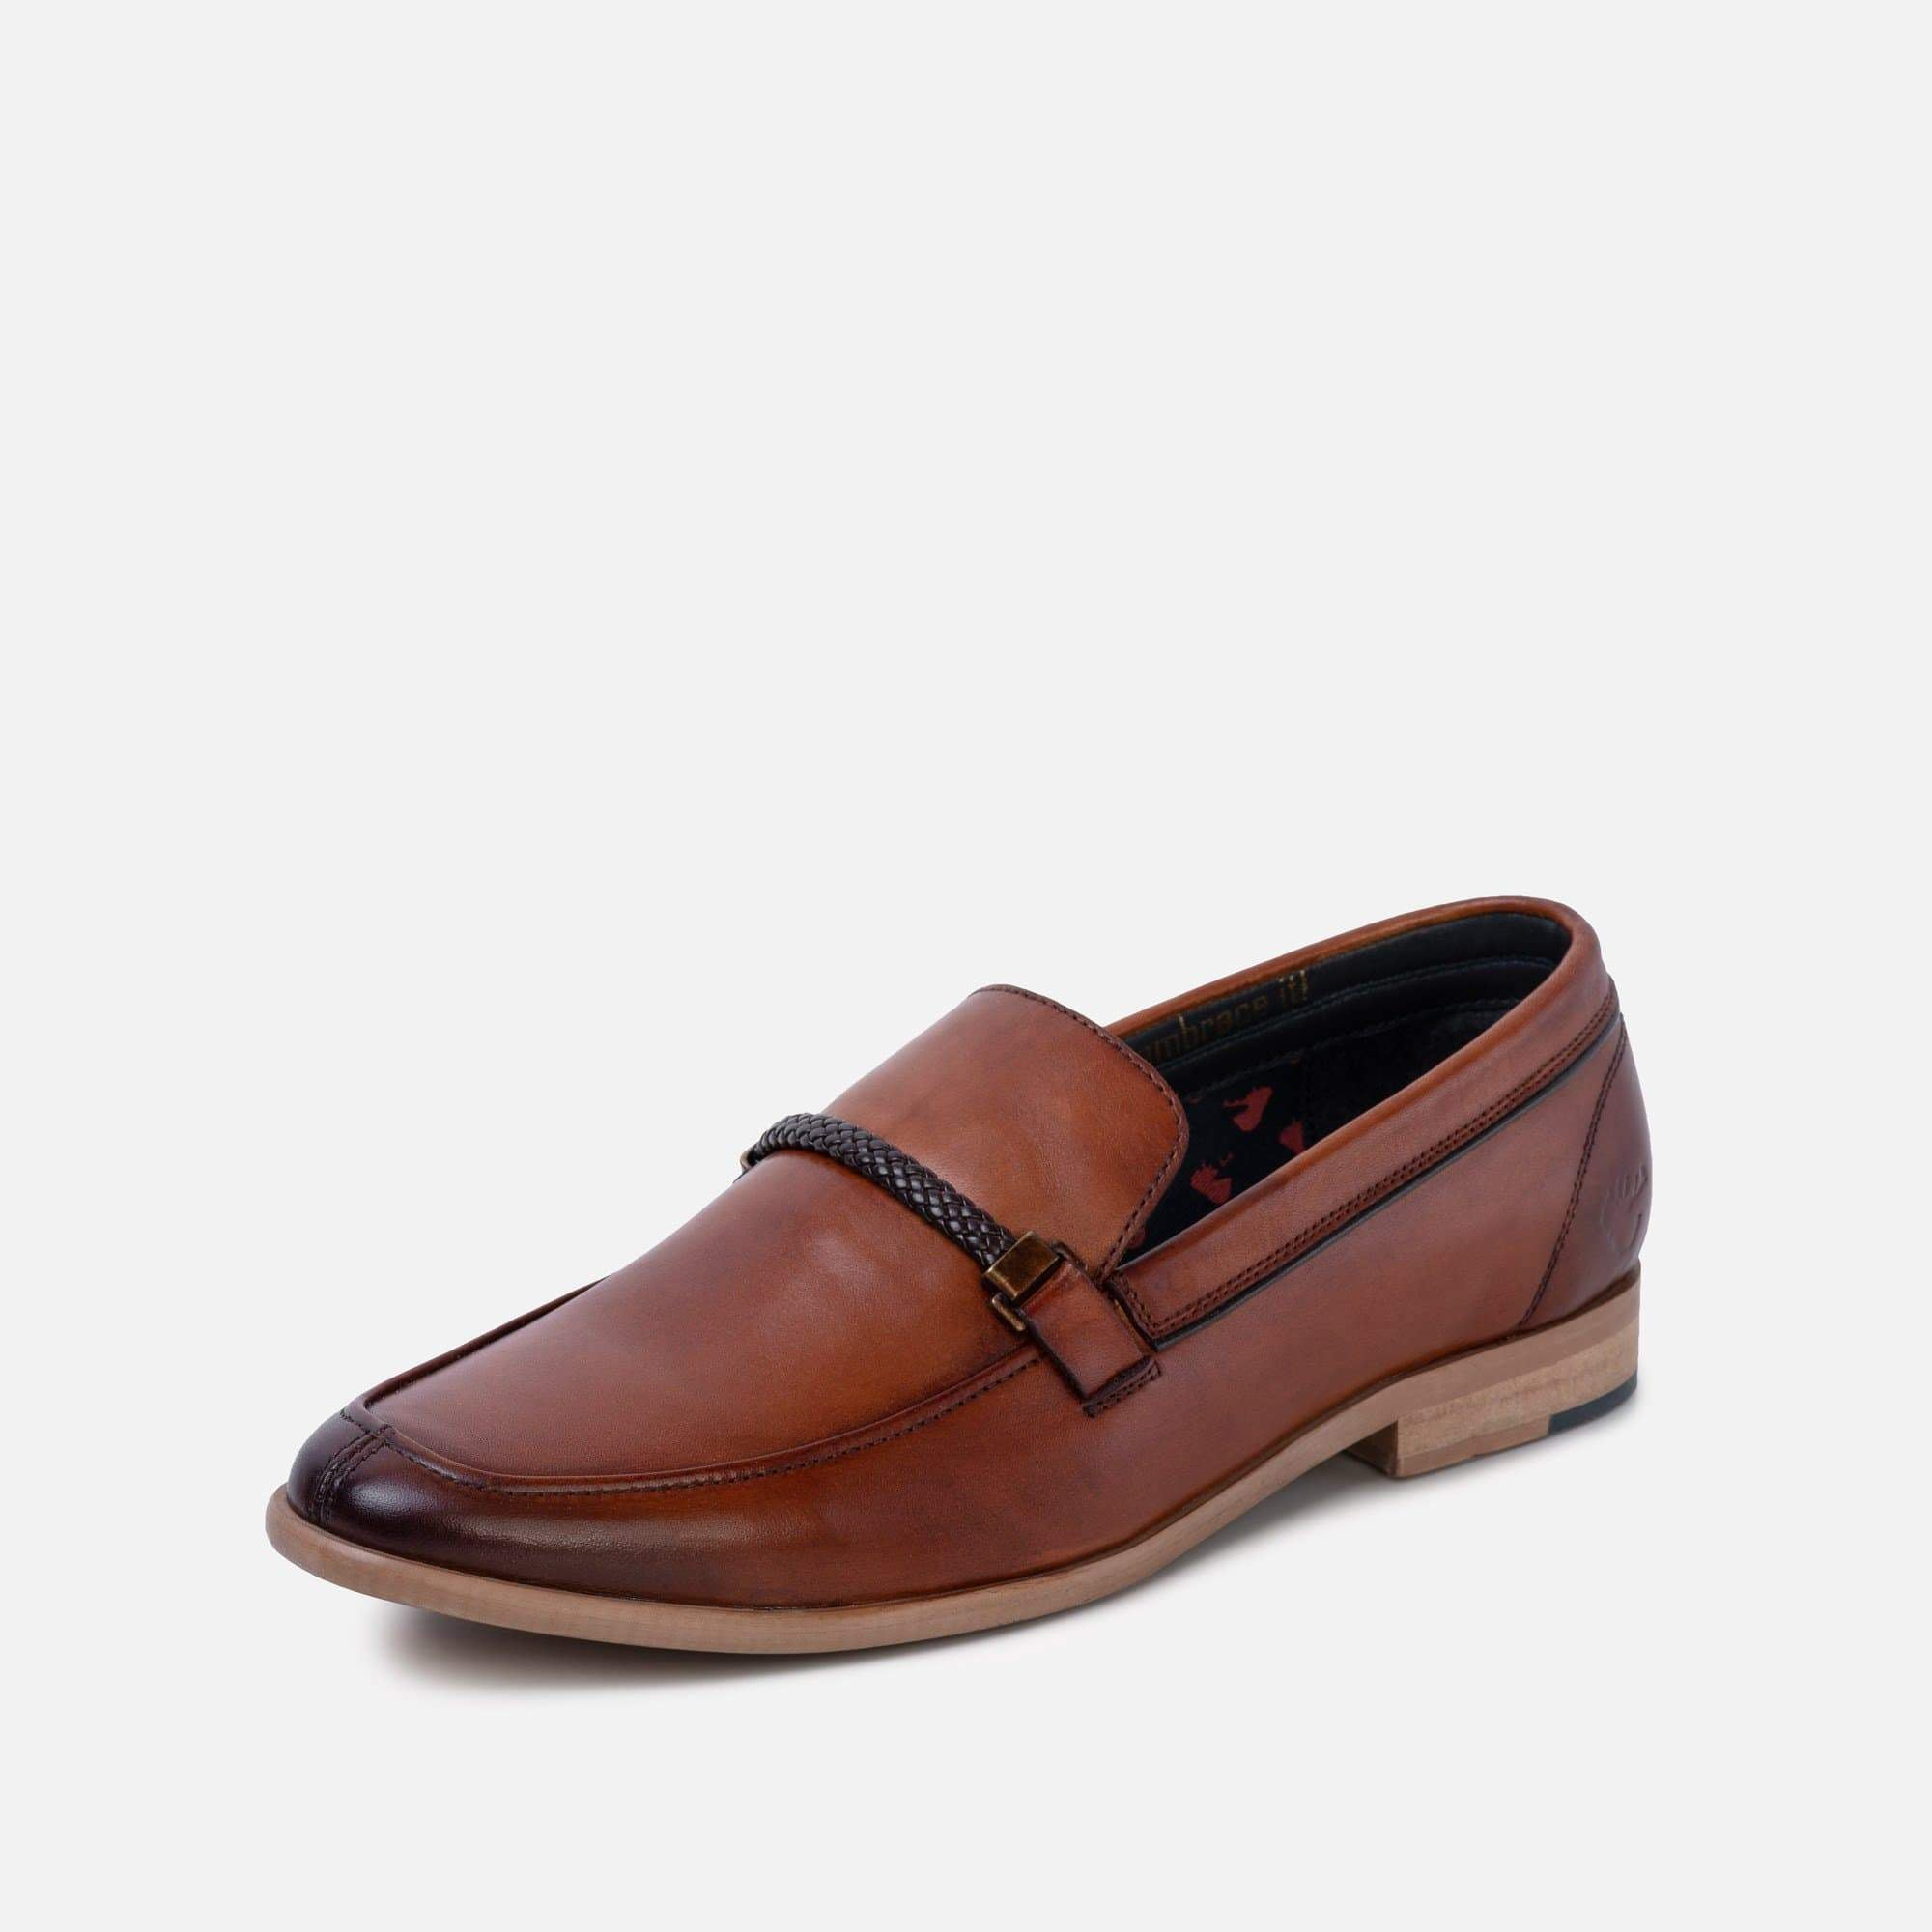 Side profile adrian mens tan leather loafer with round toe